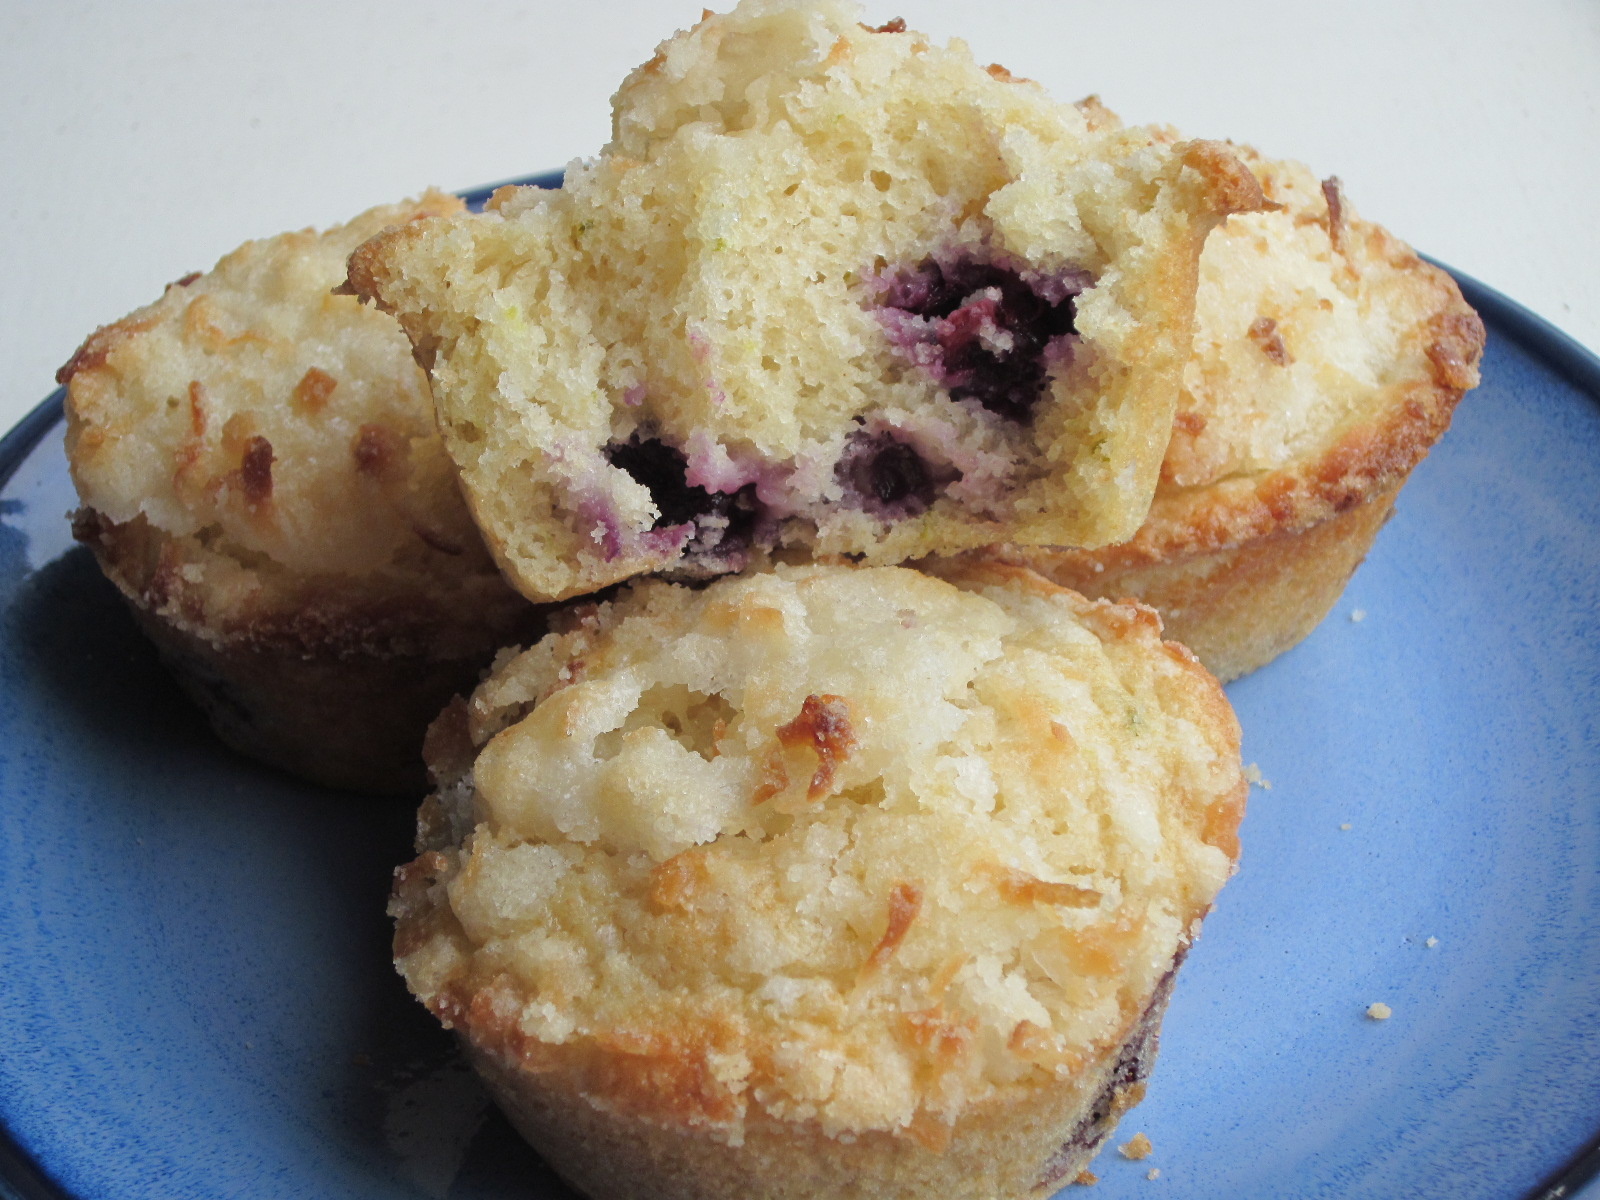 ... Luvin' In The Kitchen: Blueberry Lime Muffins with Coconut Streusel